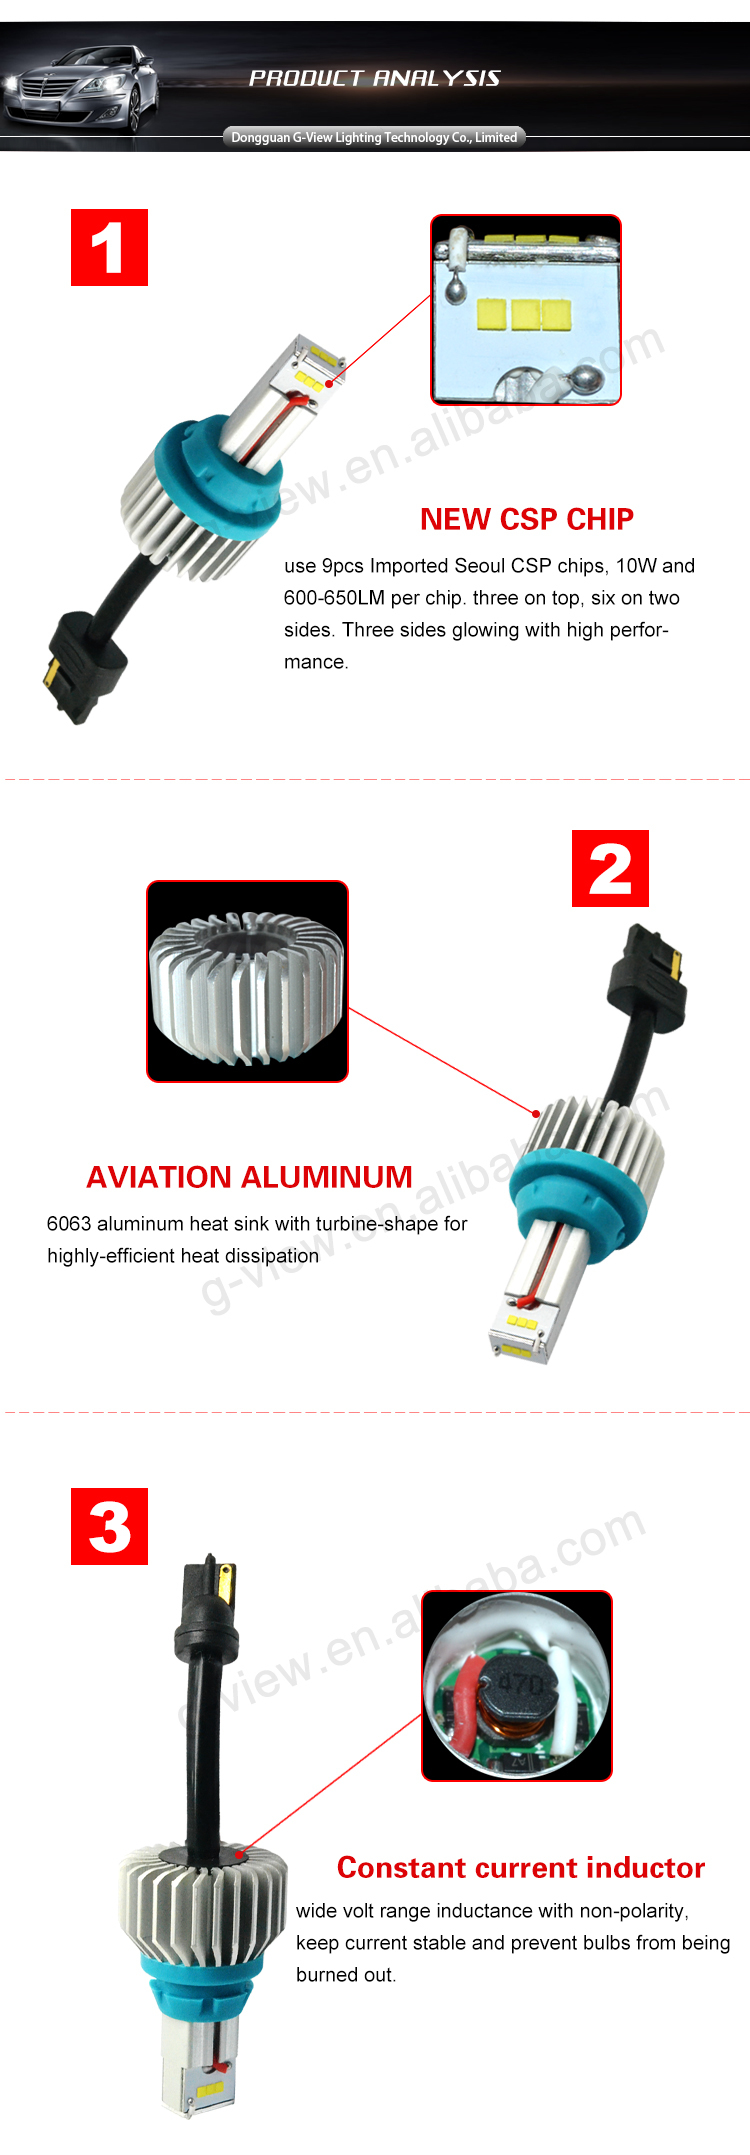 Superbright 1200lm T20 auto led light ,9 pcs CSP led reversing car light, 7440 led auto bulb